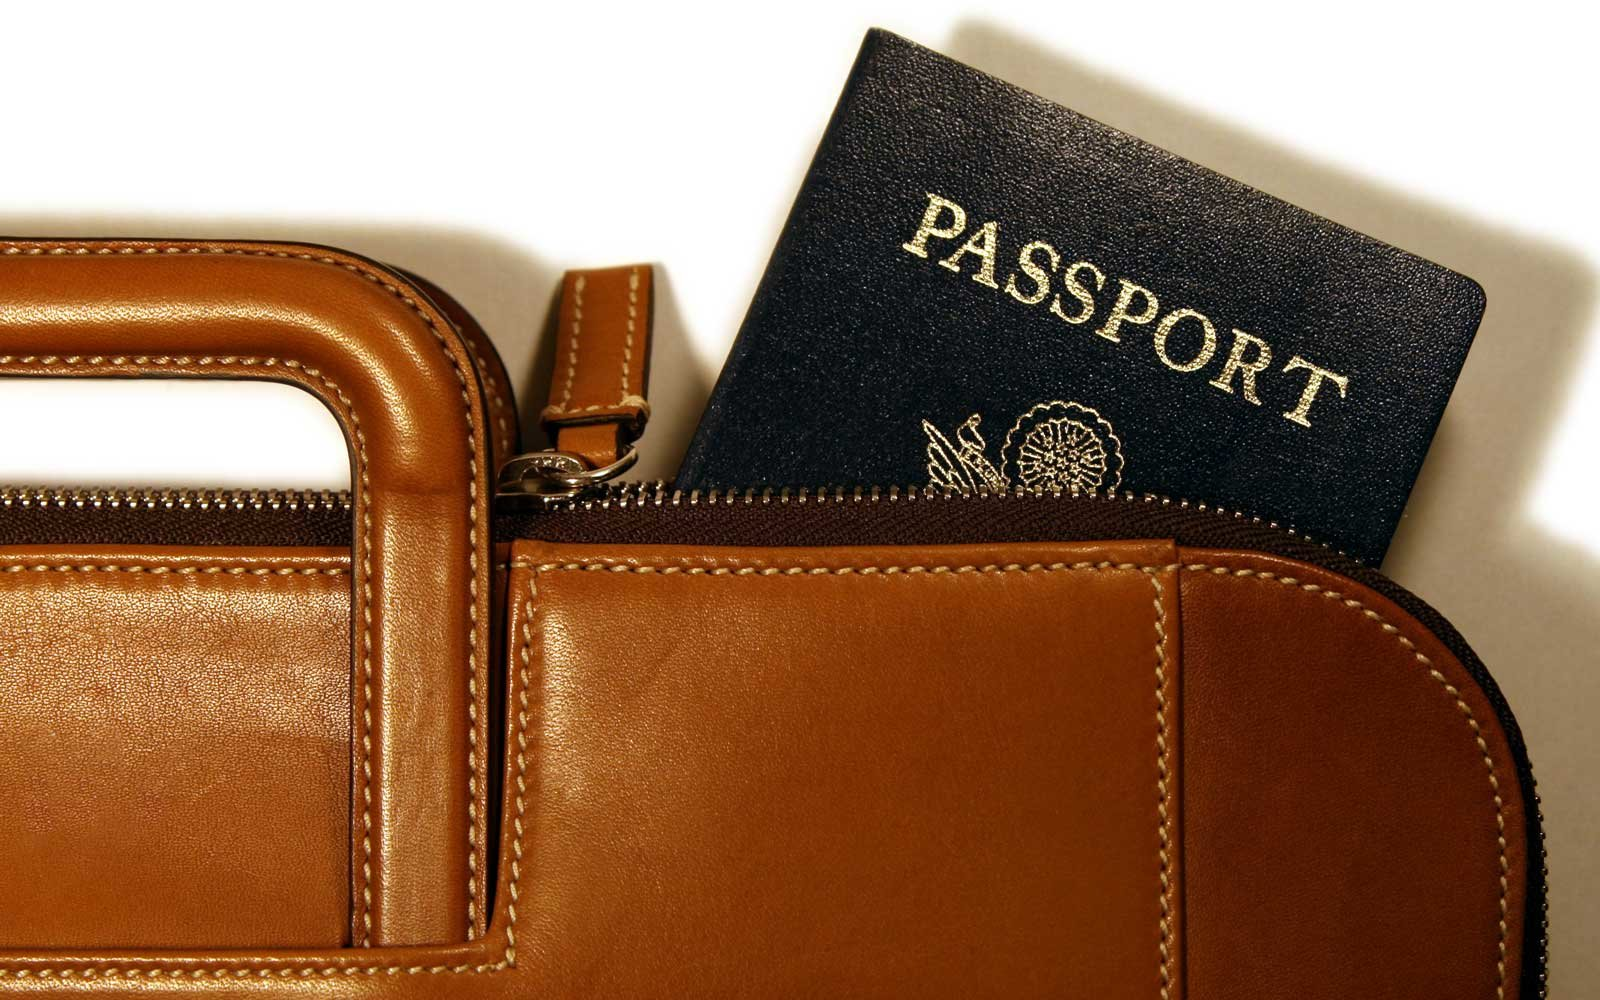 Why You Should Never Put Your Passport in Your Carry-on (Video)